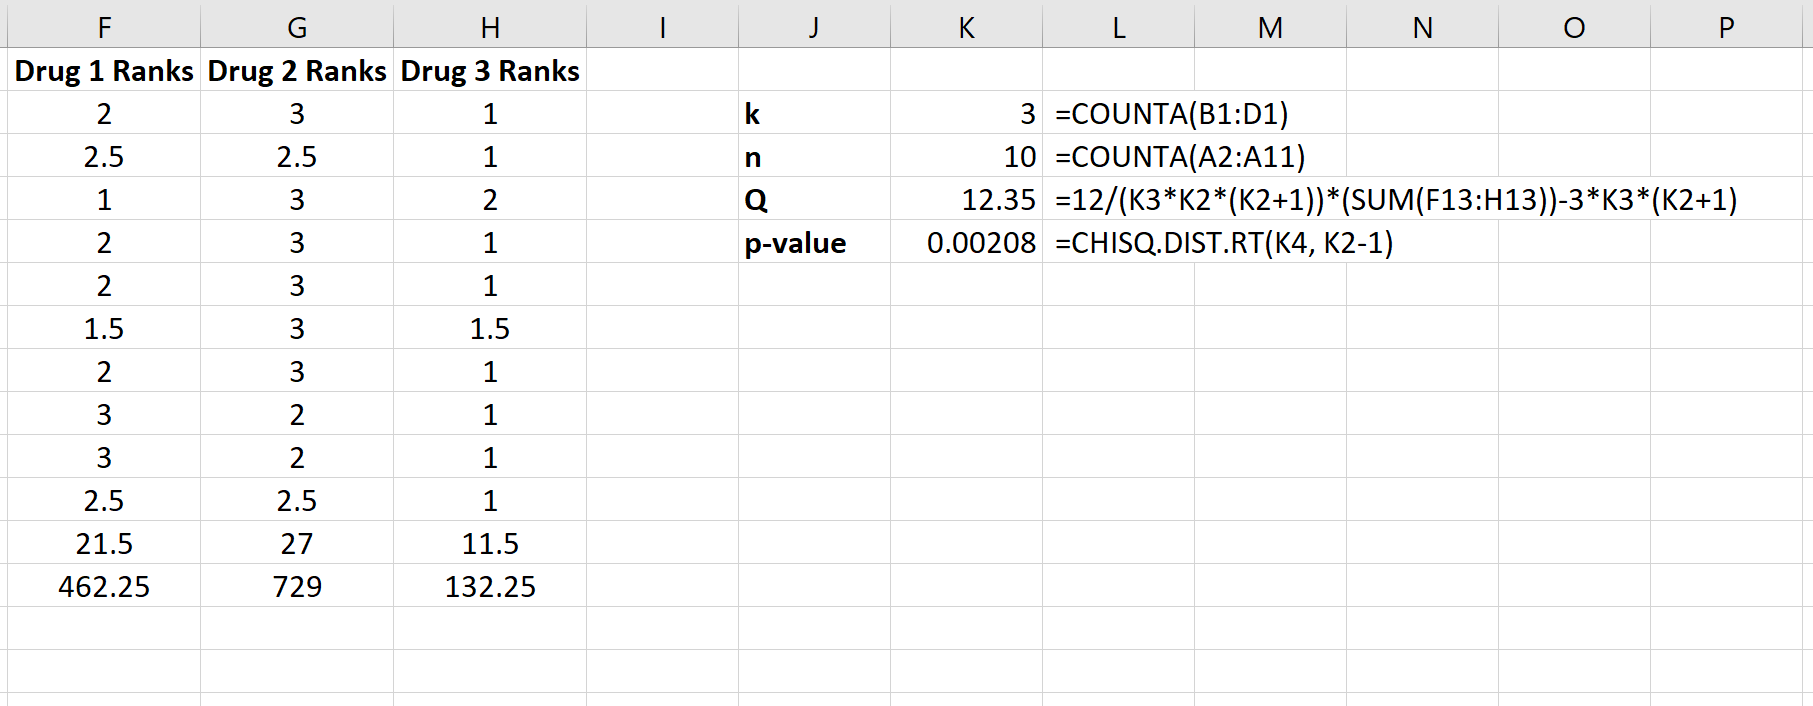 Friedman test calculation in Excel